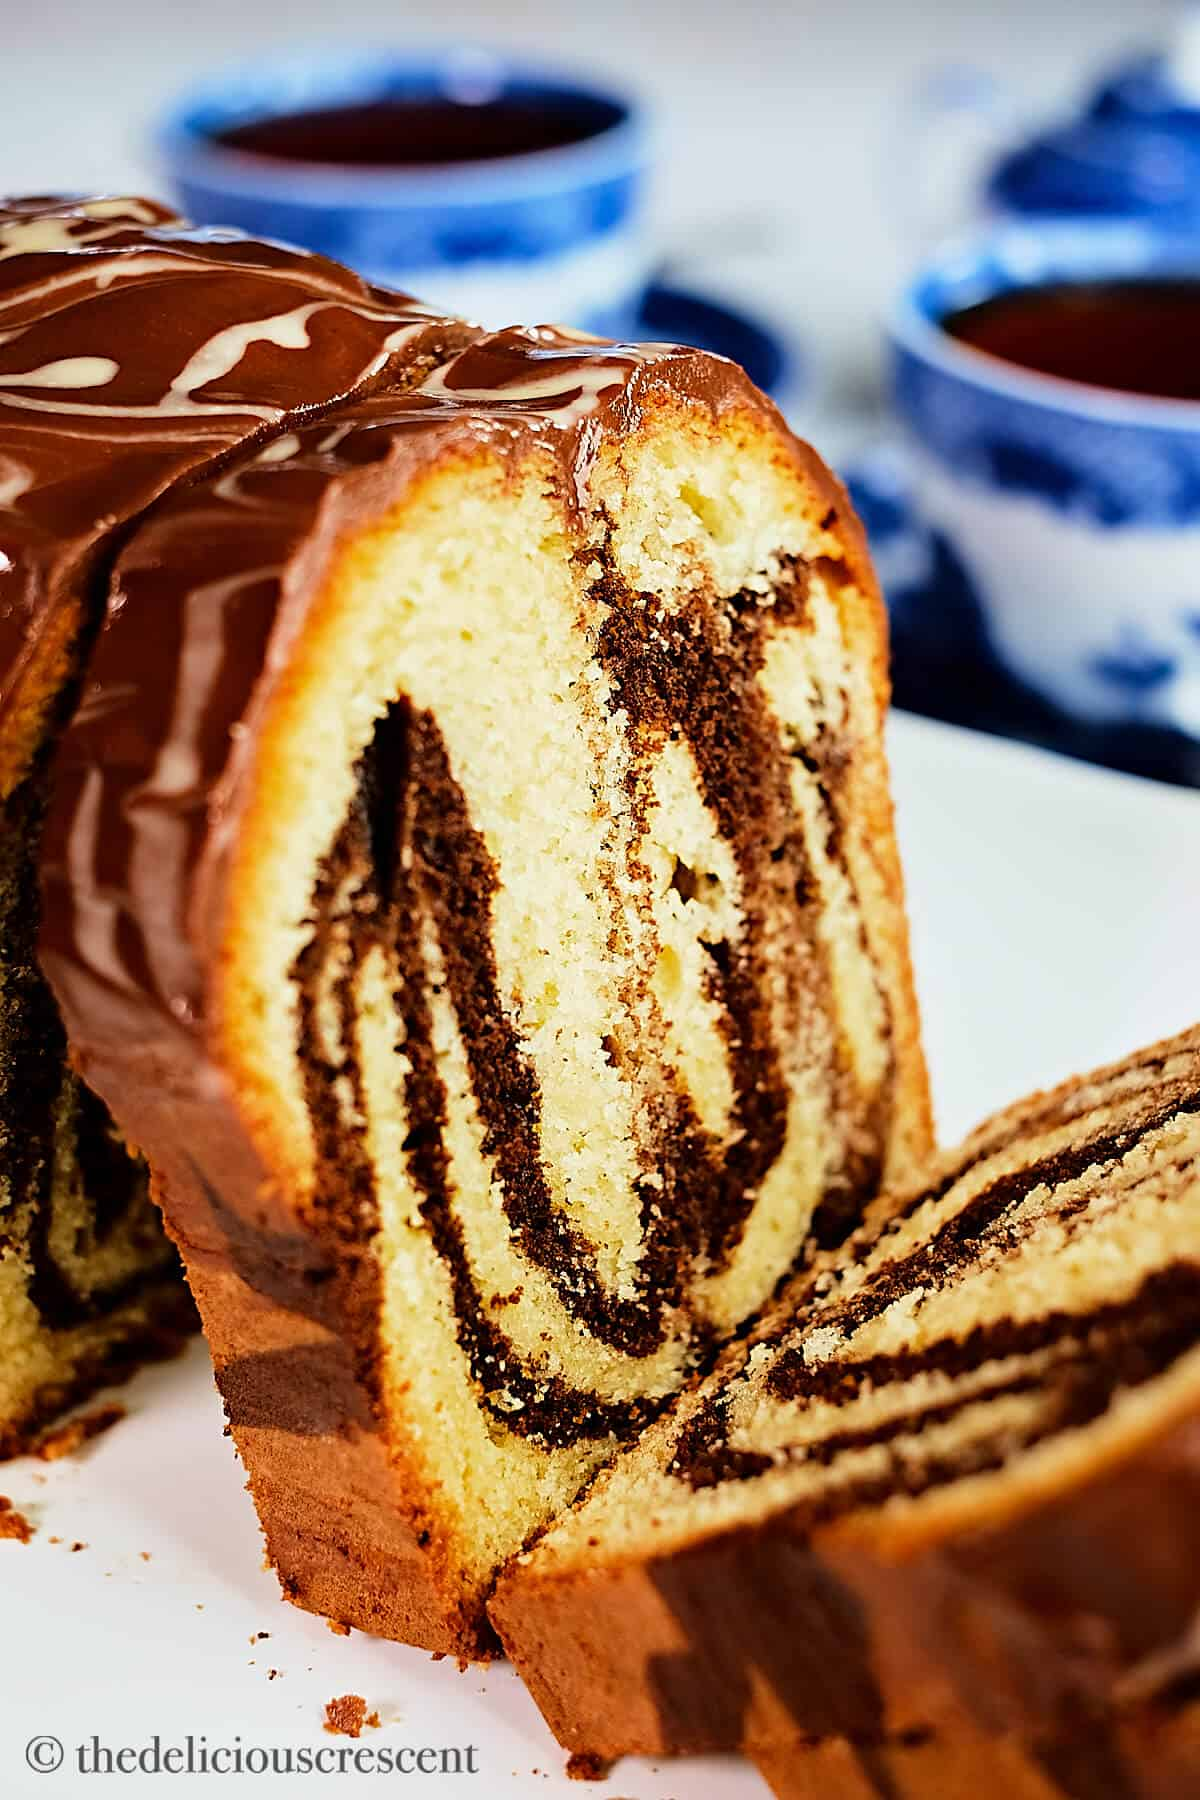 Close up view of a marble cake made with tahini.